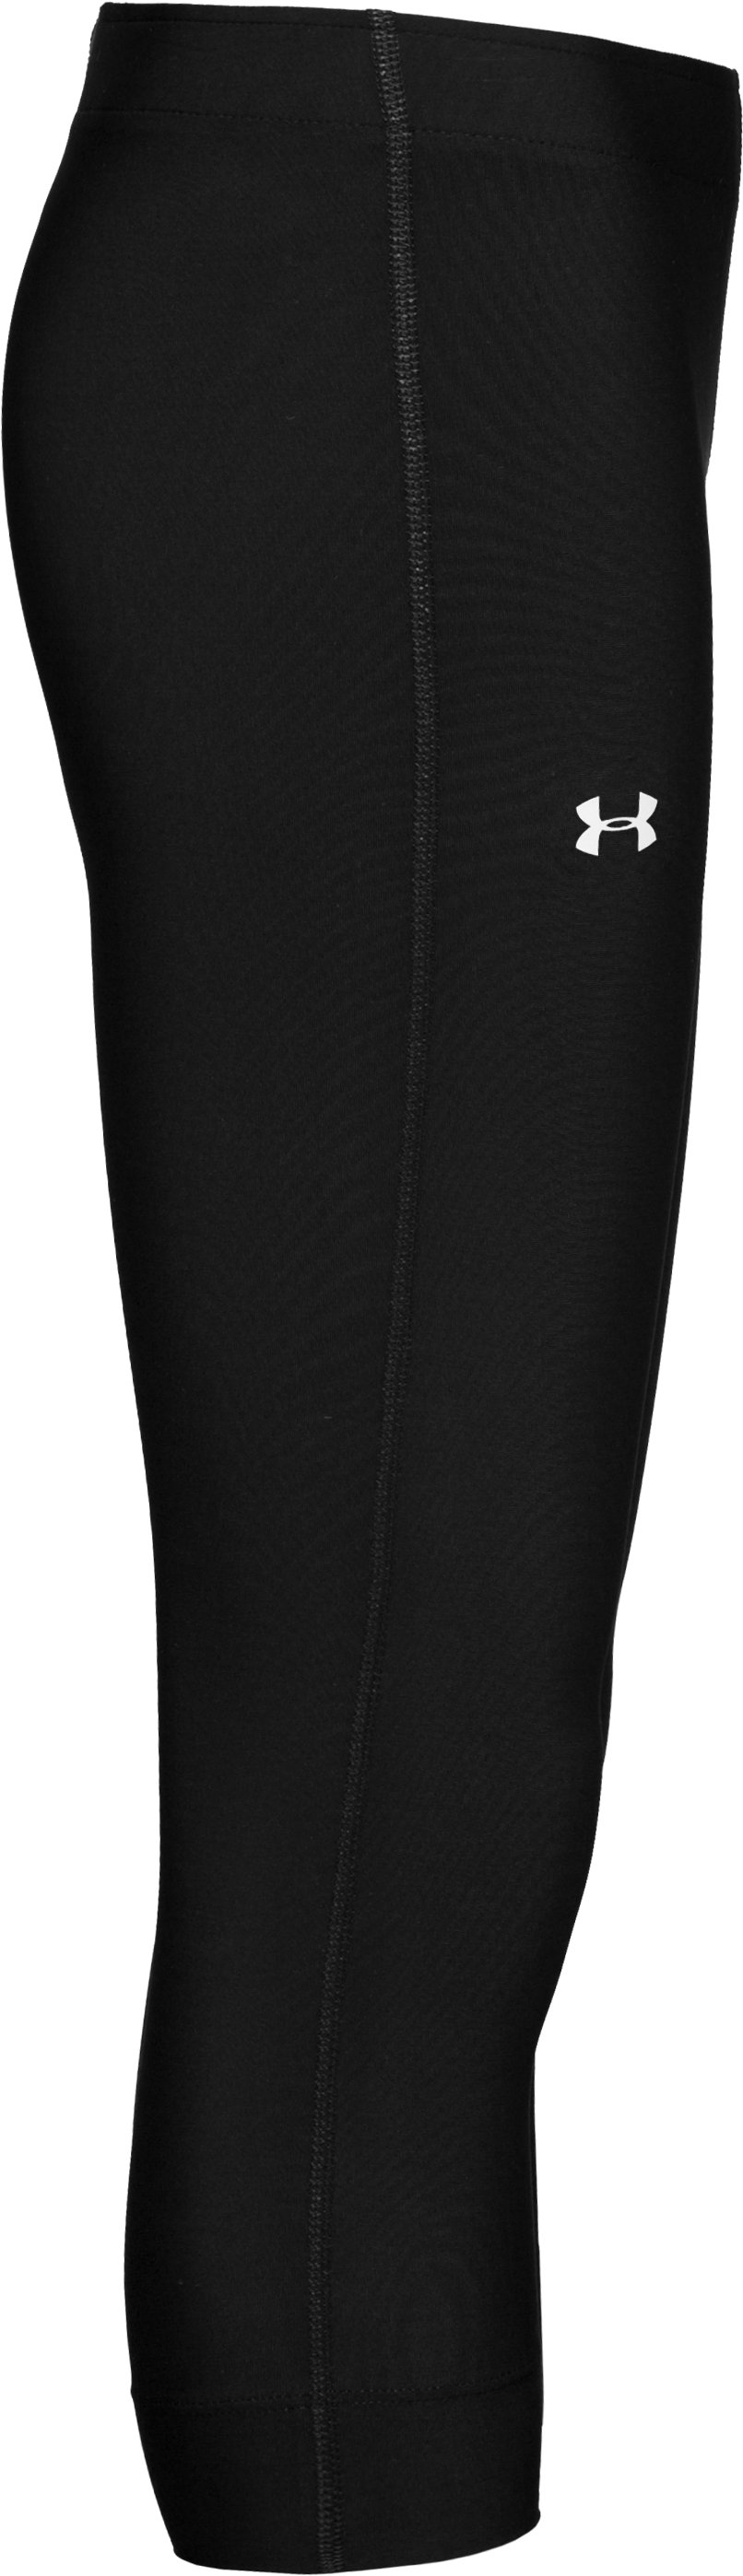 Girls' HeatGear® Compression Capri Pants, Black